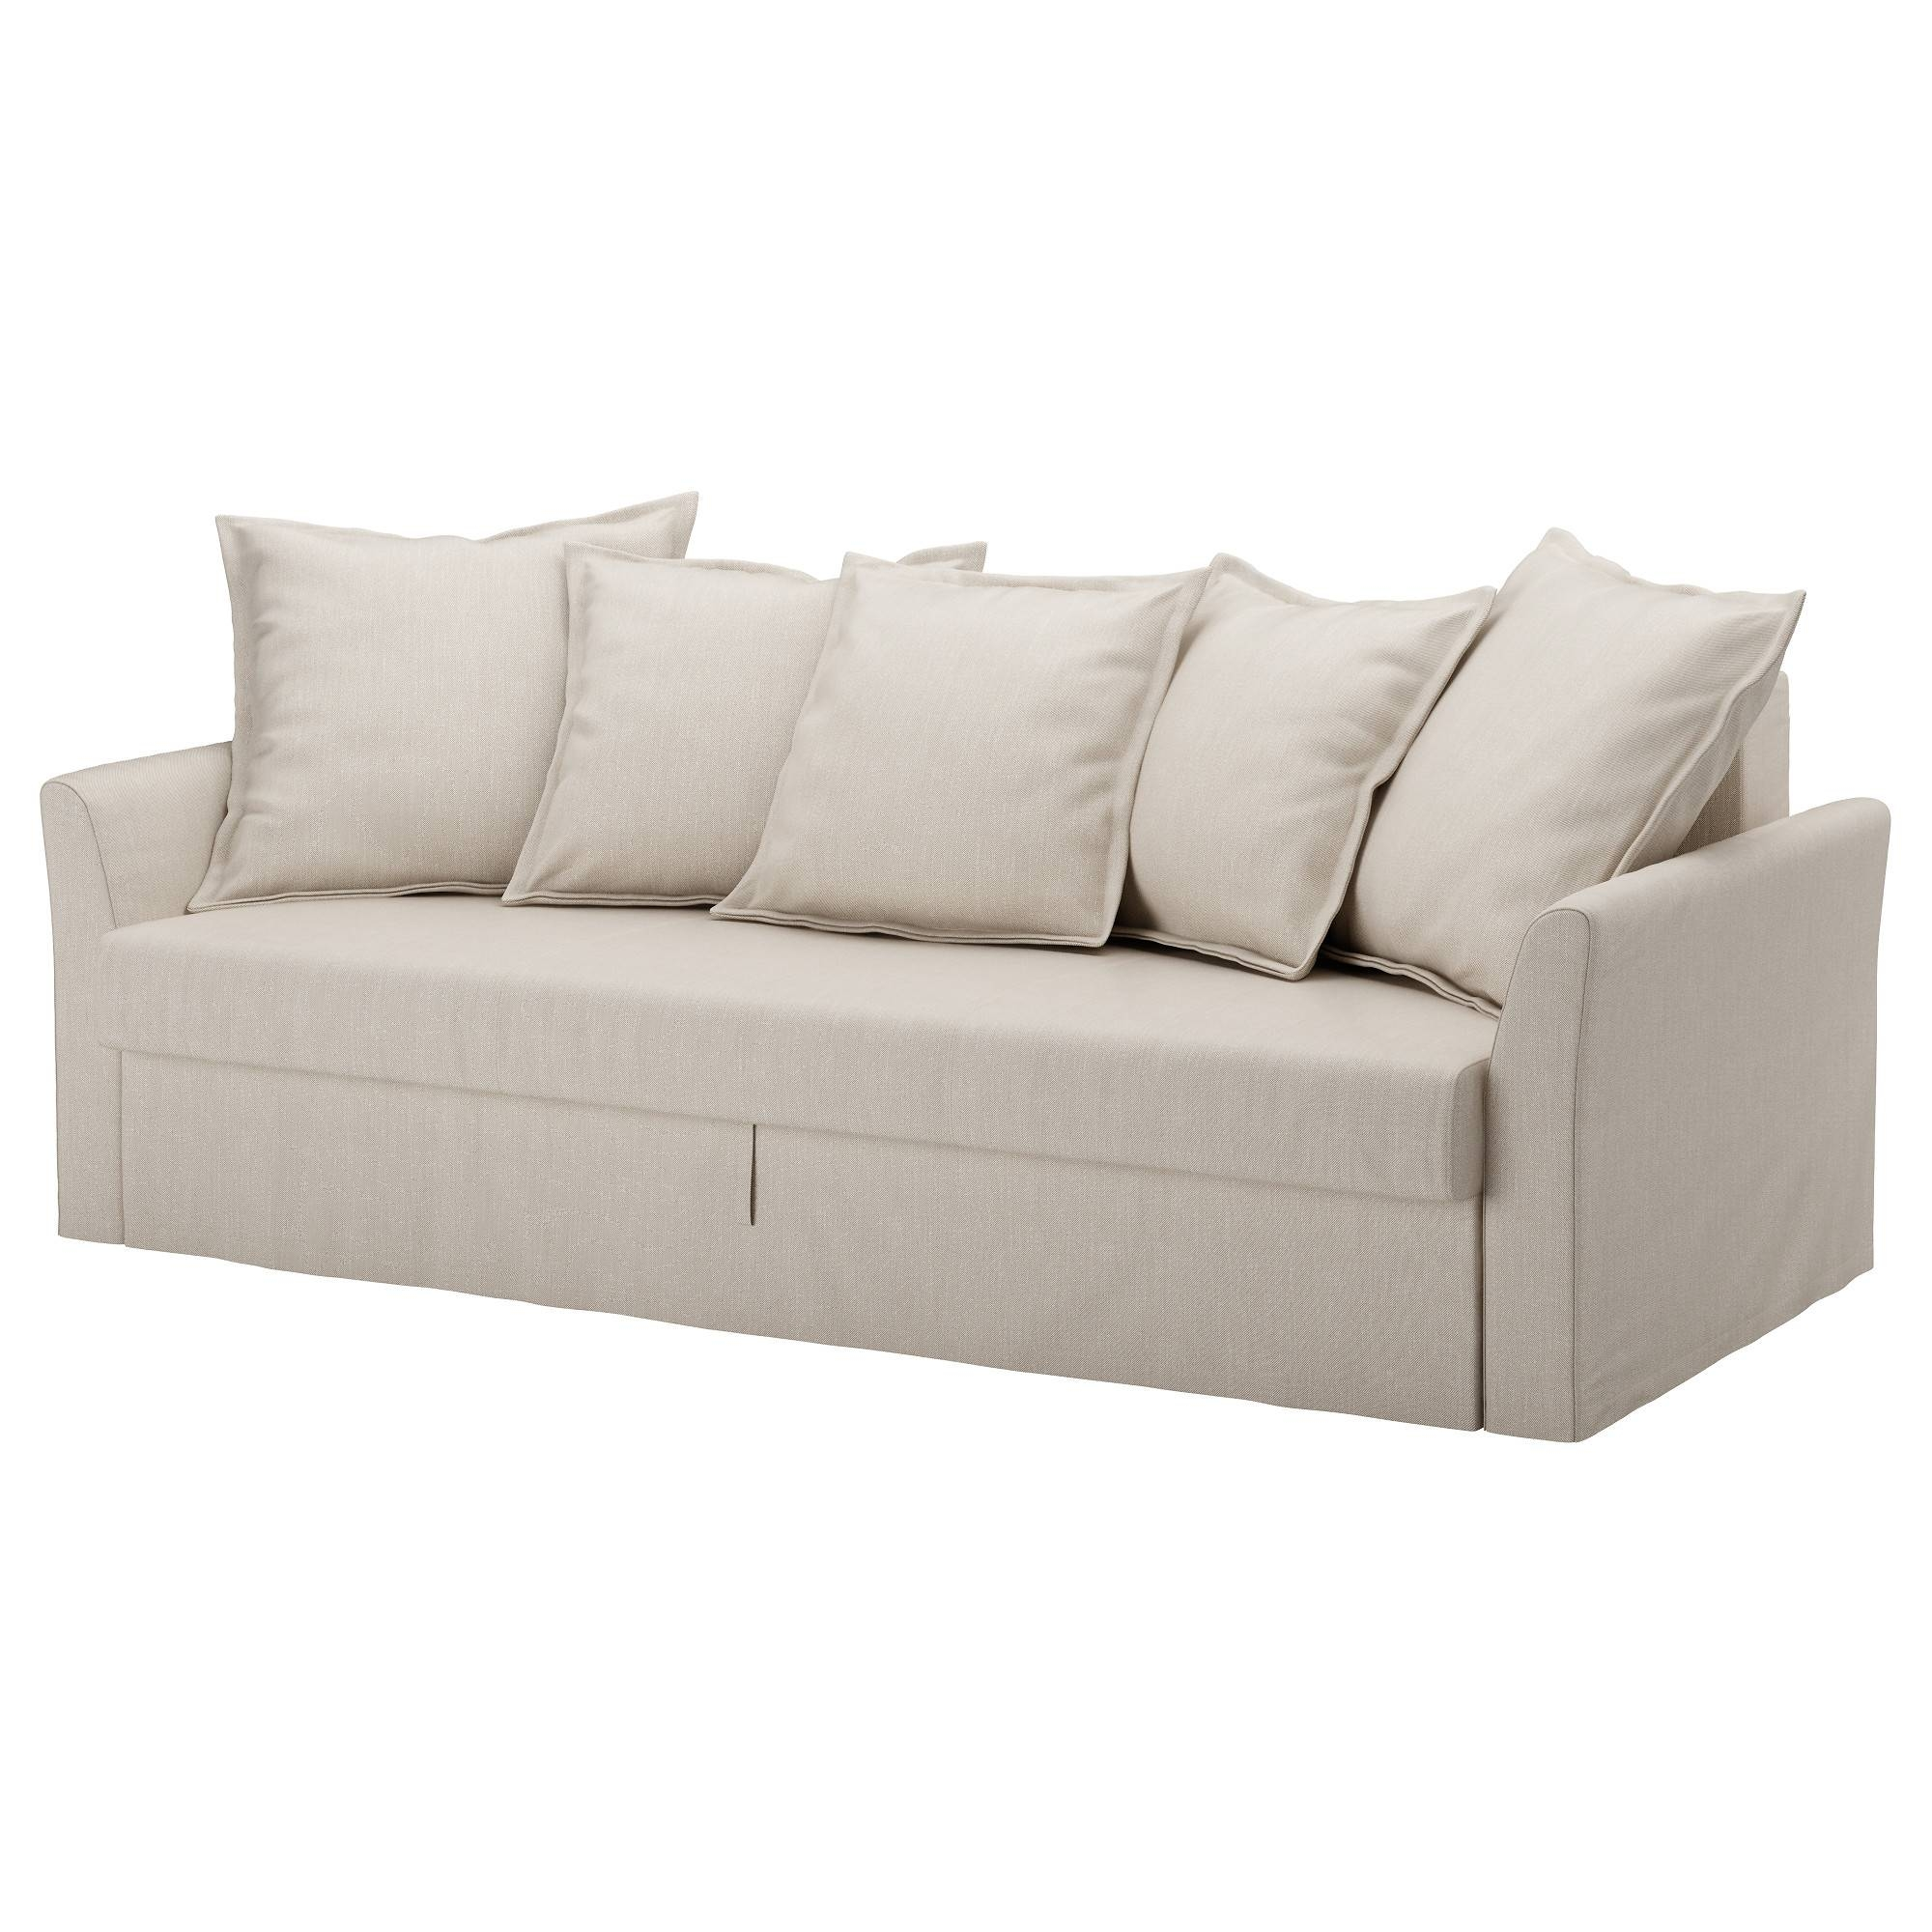 Sofa Beds & Futons – Ikea In Sectional Sofa Bed With Storage (View 15 of 25)